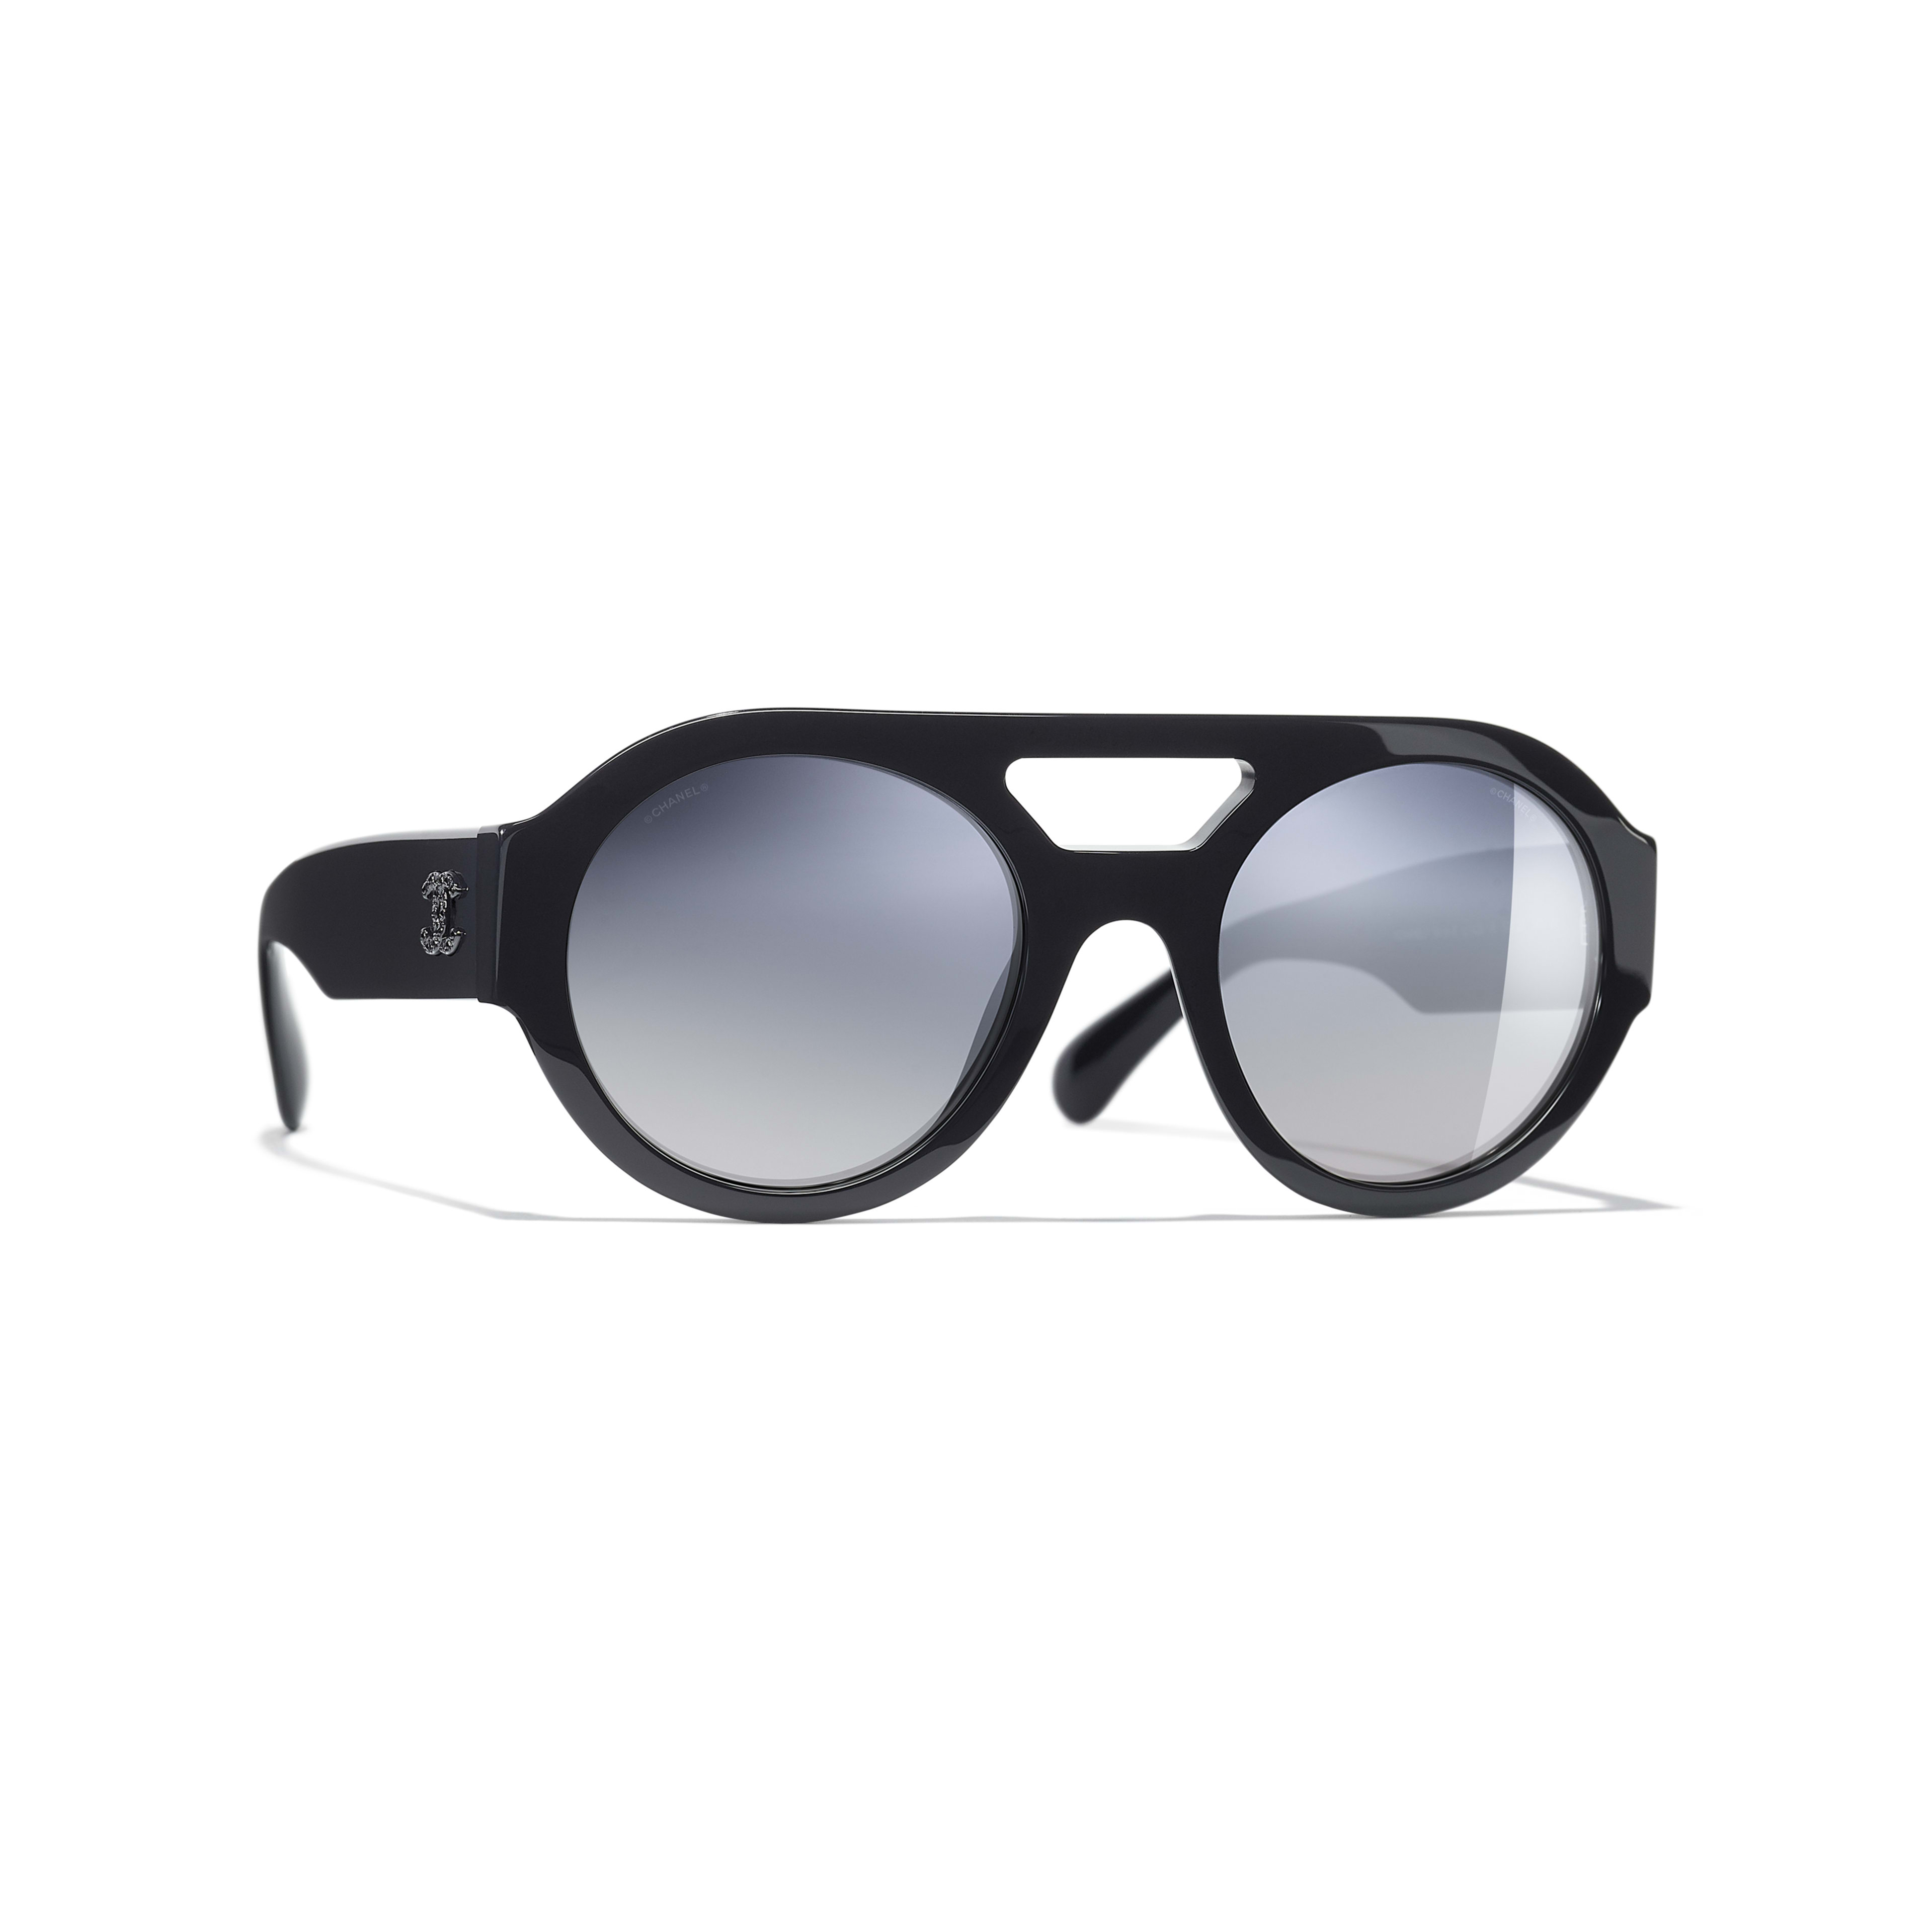 Round Sunglasses - Dark Blue - Acetate & Strass - Default view - see full sized version